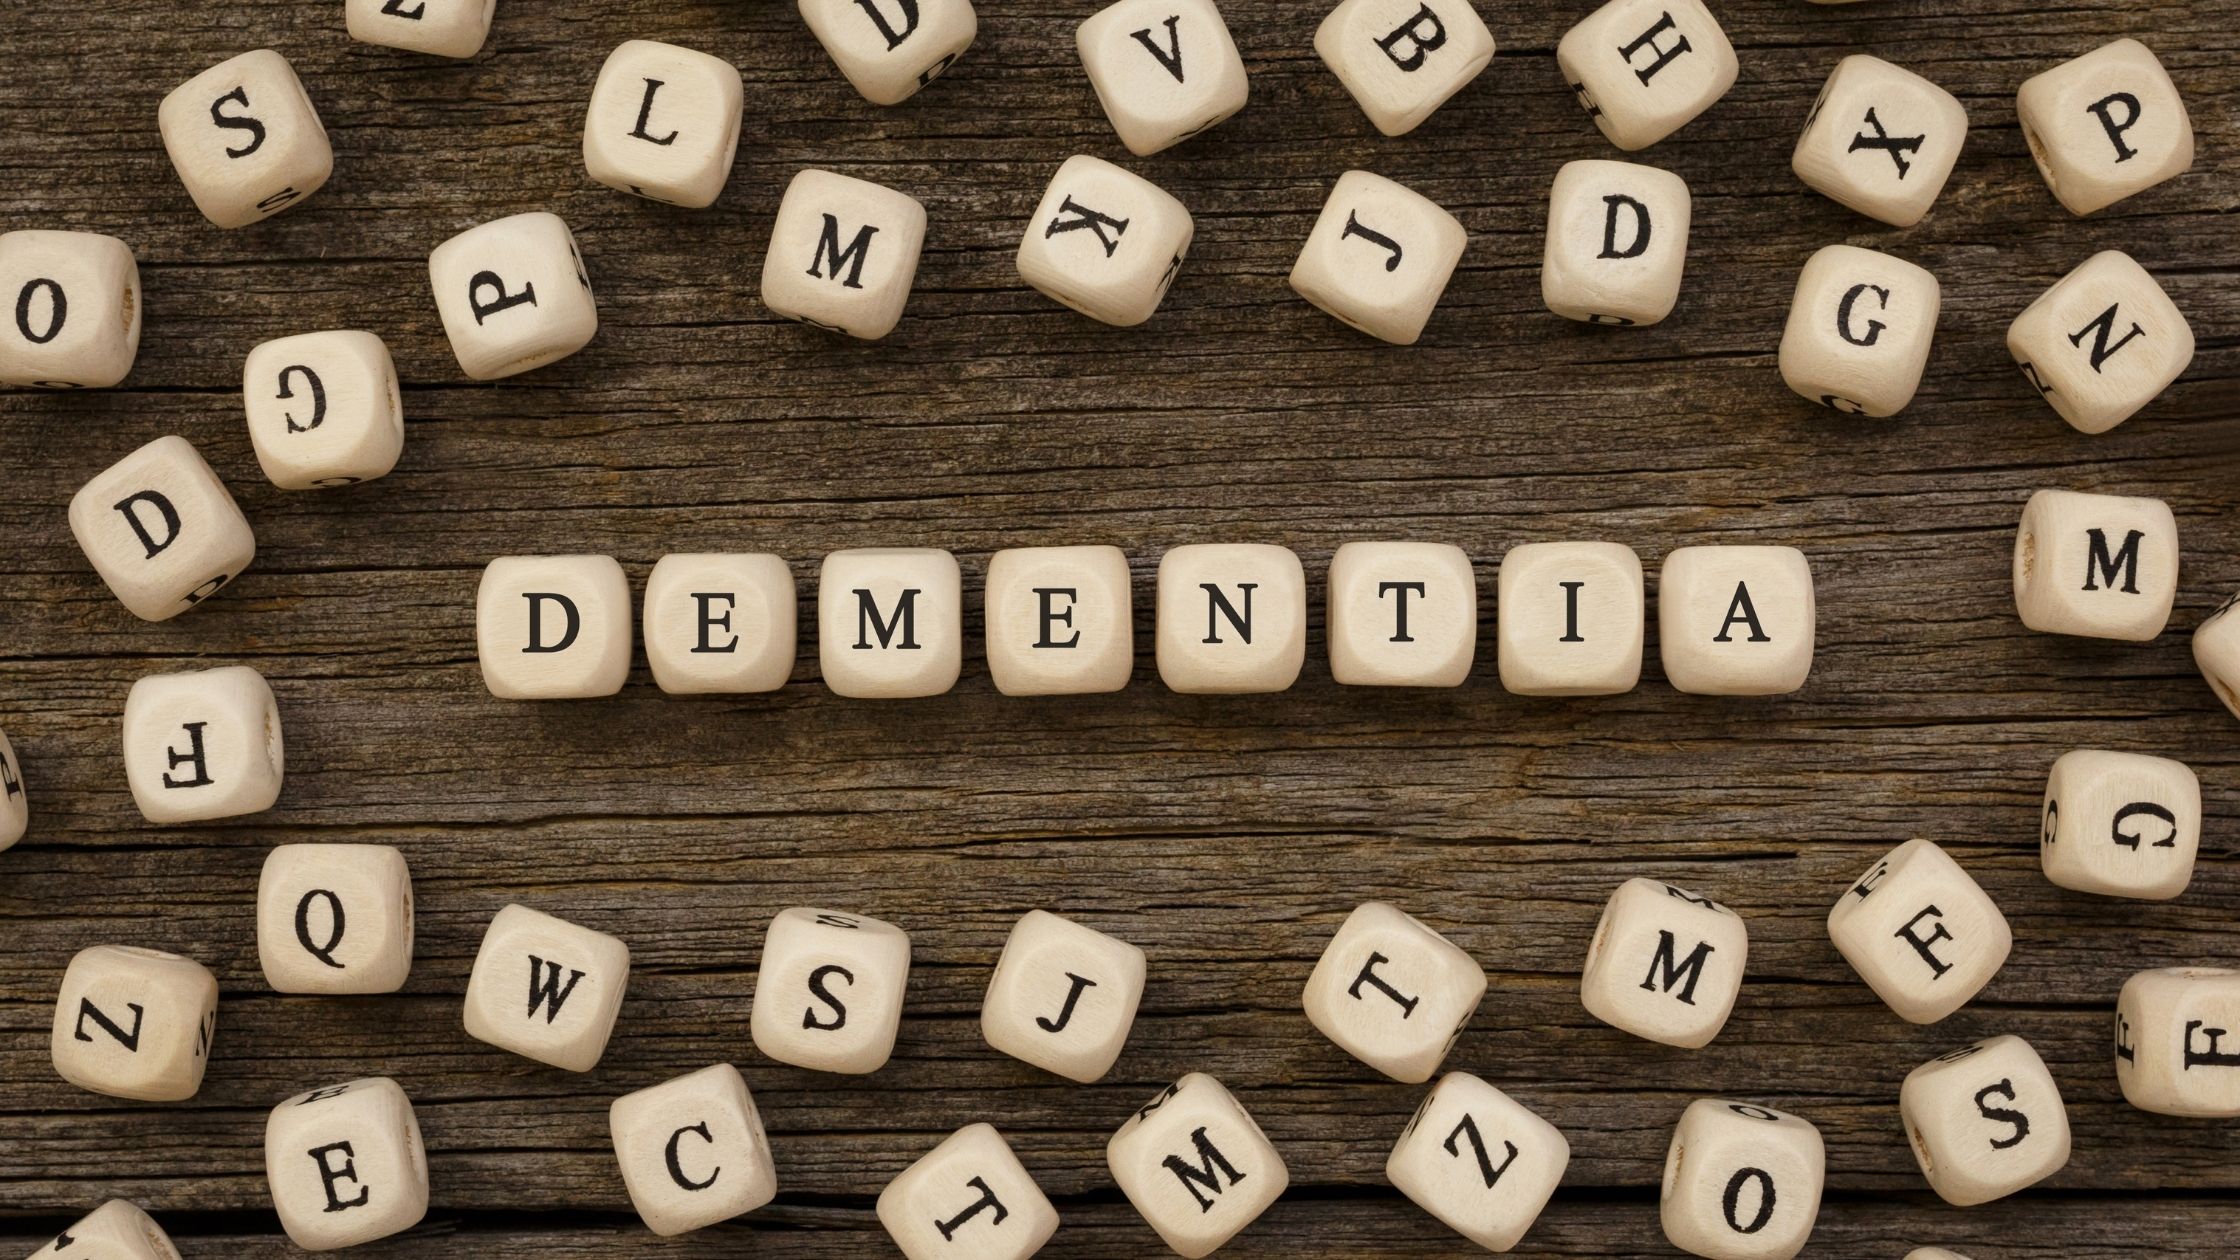 Annual Summit & Expo on Dementia and Alzheimer's Disease 2022